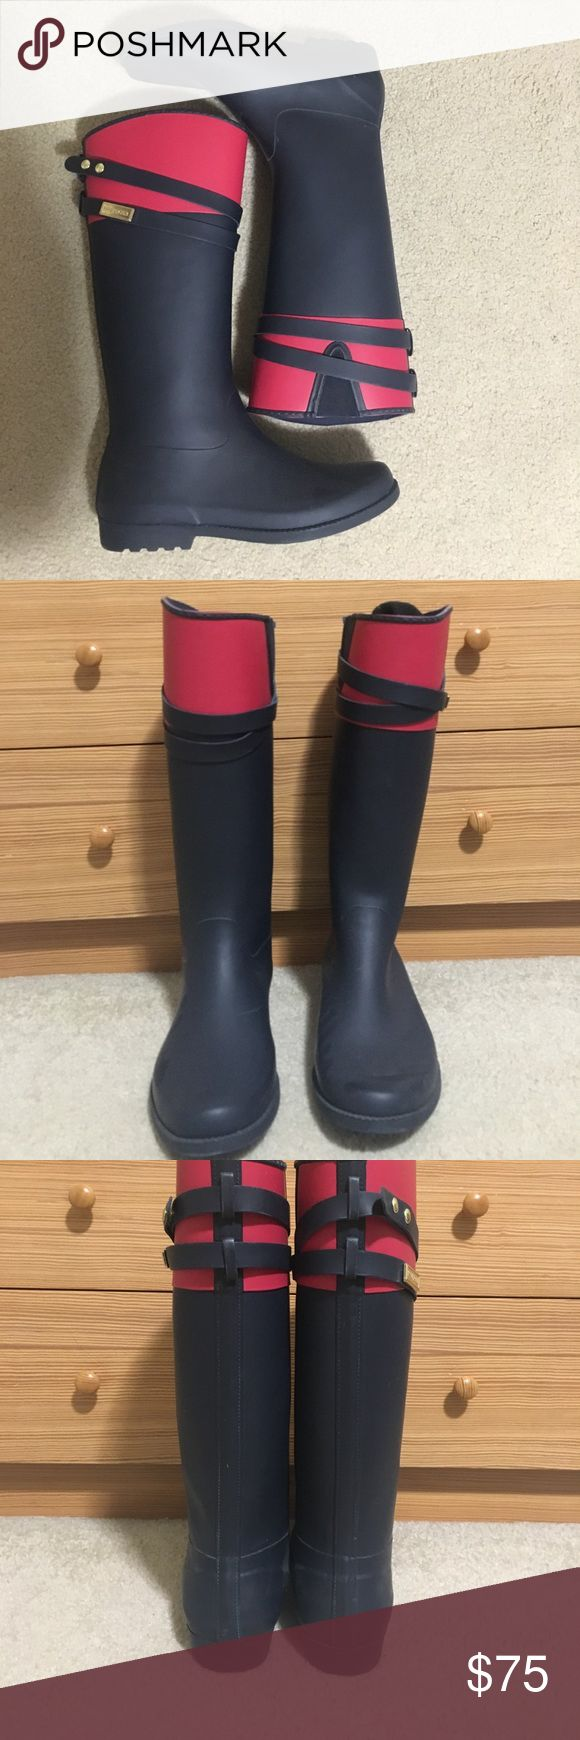 Tommy Hilfiger Rain Boots Tommy Hilfiger blue and red rain boots with gold hardware. Only worn 2X. In great condition. Tommy Hilfiger Shoes Winter & Rain Boots